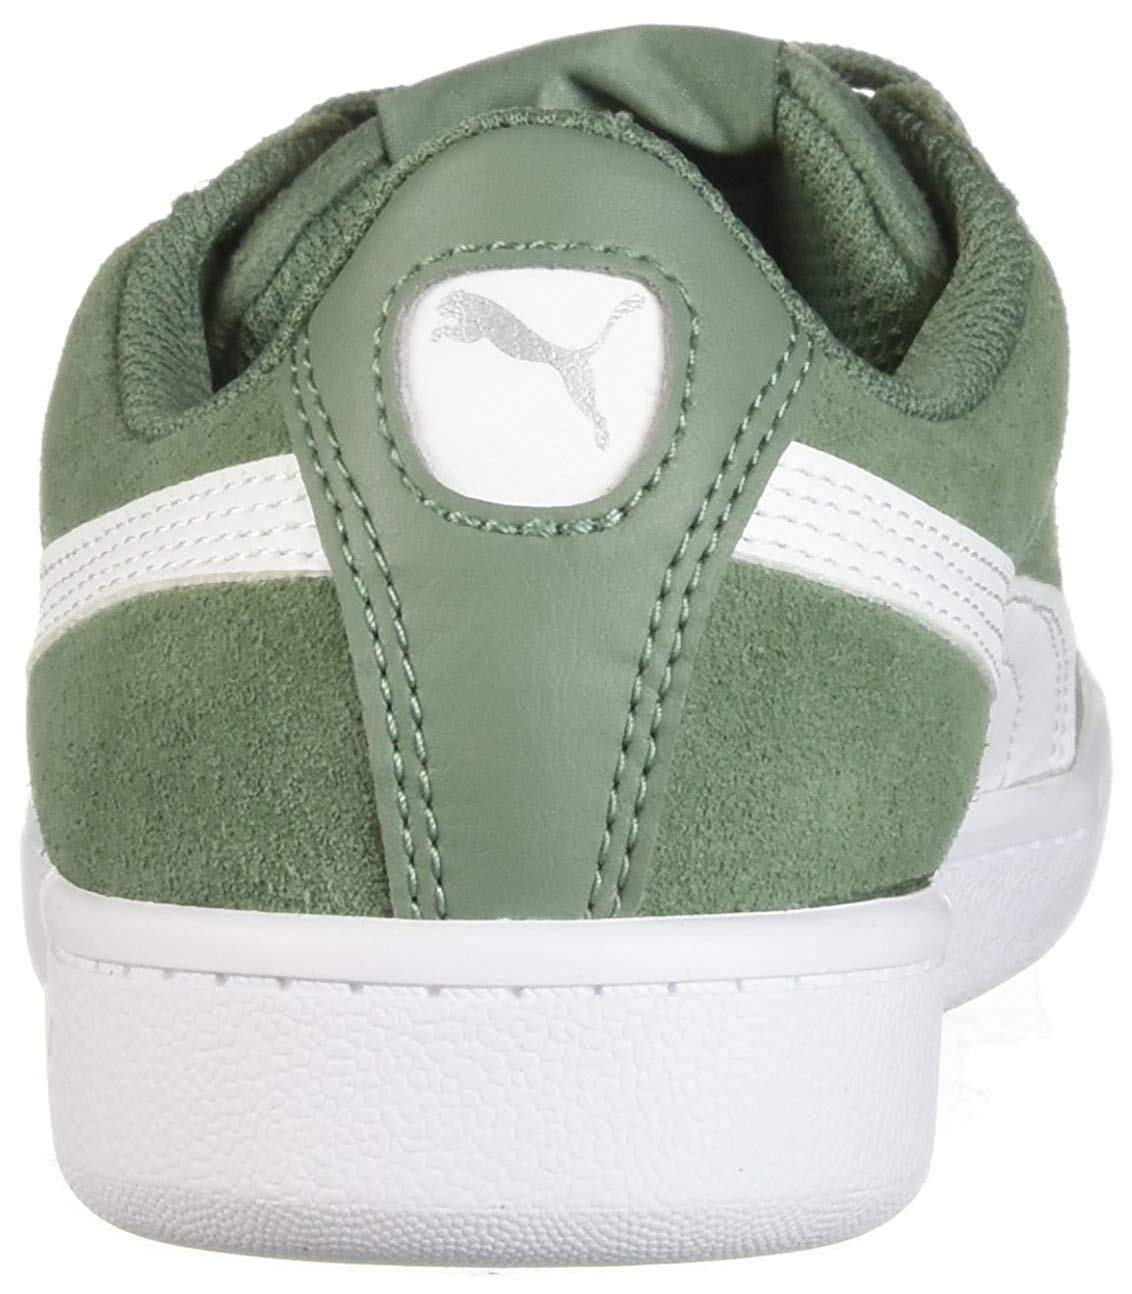 325abda8e36a PUMA Womens Vikky Suede Low Top Lace Up Fashion Sneakers